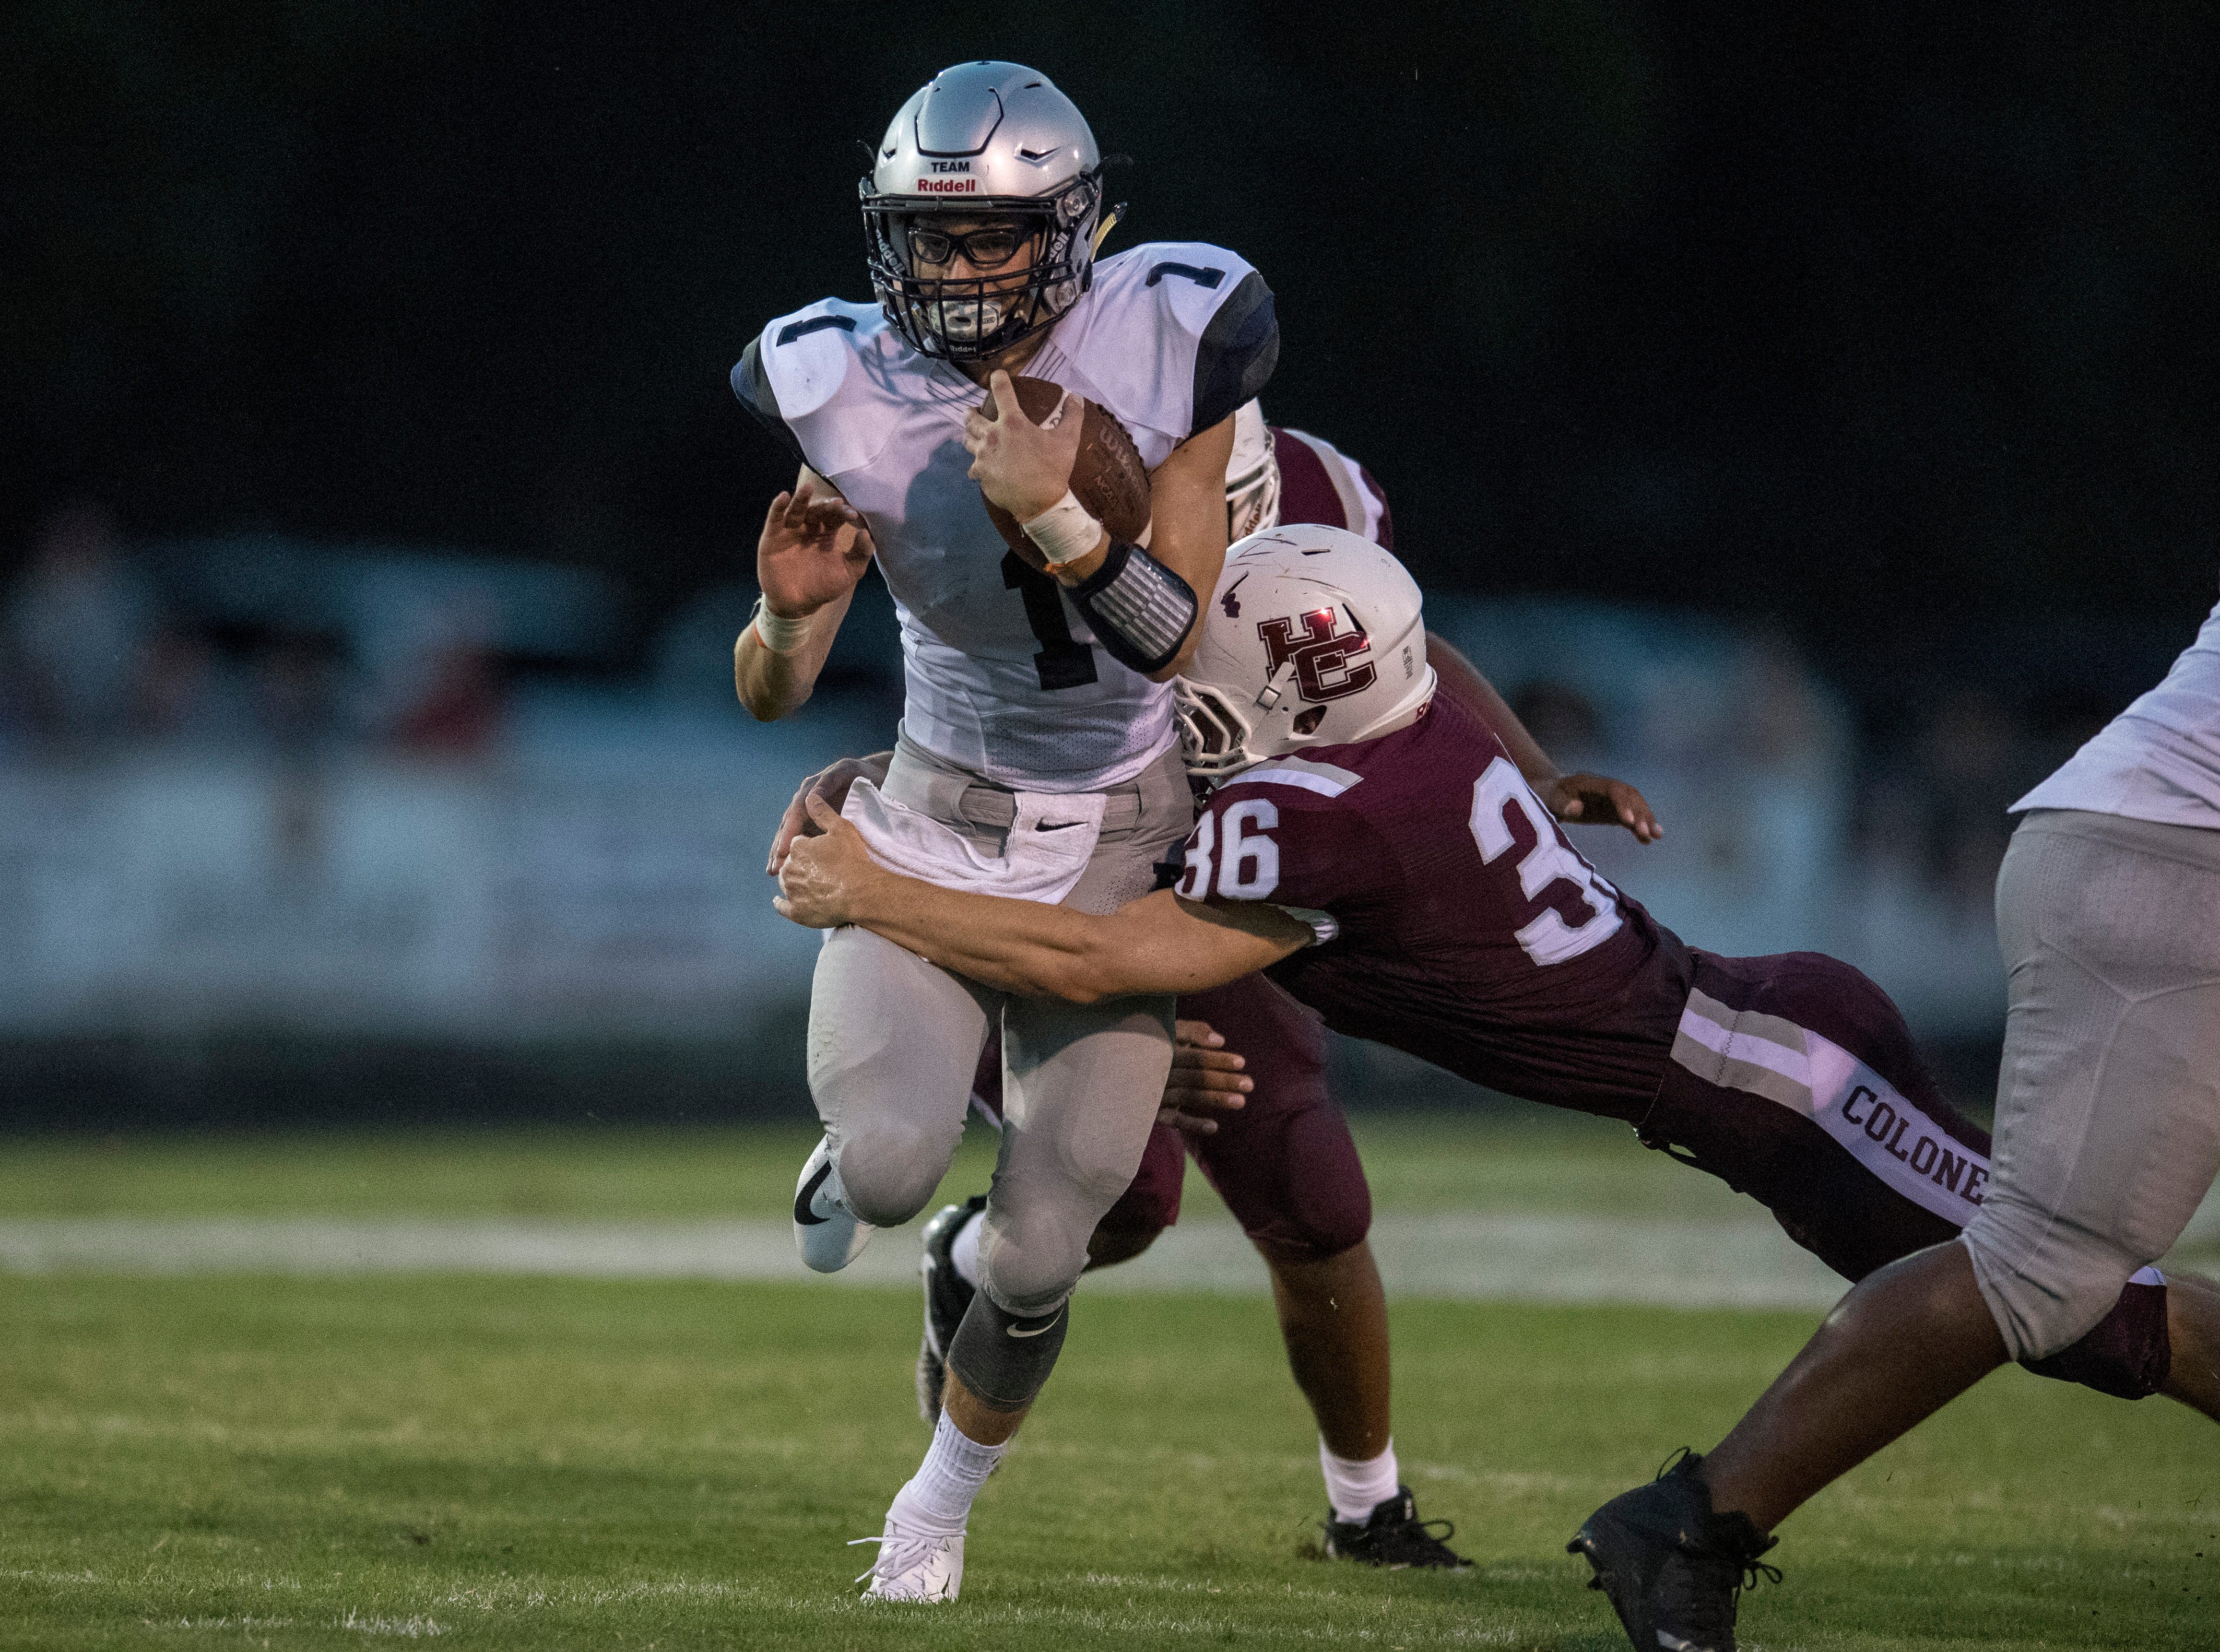 HendersonÕs Nakota Taylor (36)  goes in for a tackle against the Reitz Panthers ReitzÕs Quarterback Eli Wiethop (1) during the Reitz vs Henderson County game at Colonel Stadium Friday, August 17, 2018. The Panthers defeated the Colonels 41-35 in the season opening game.